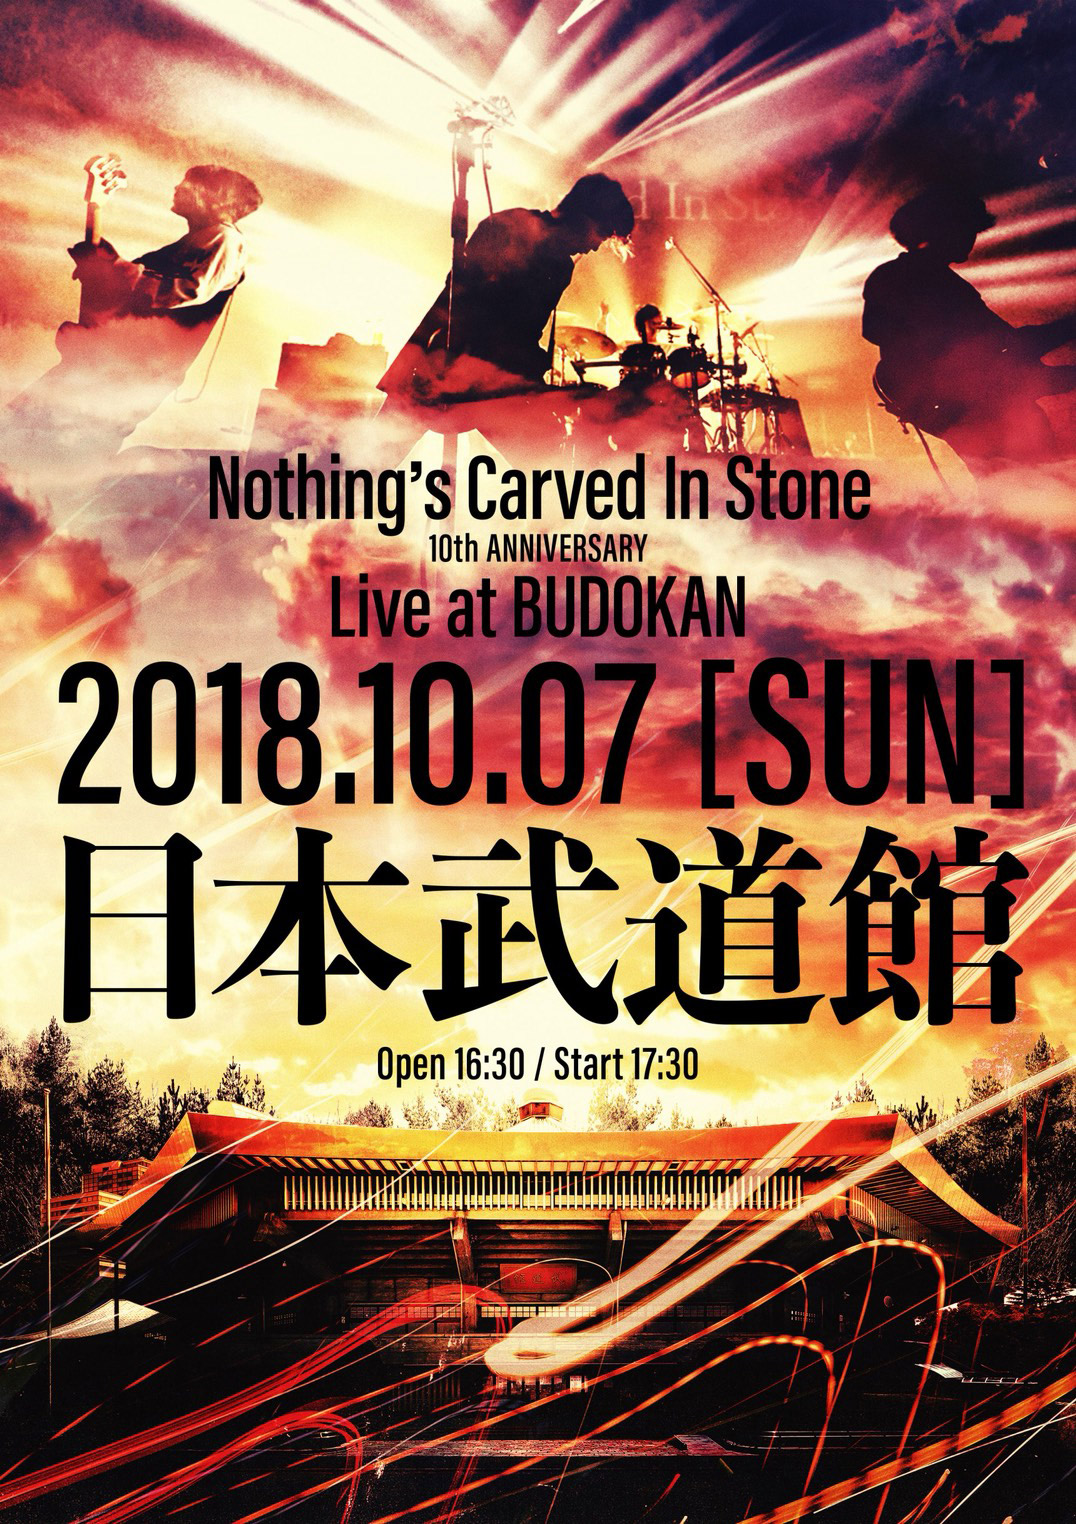 2018.10.07 Nothing's Carved In Stone 10th Anniversary Live at BUDOKAN